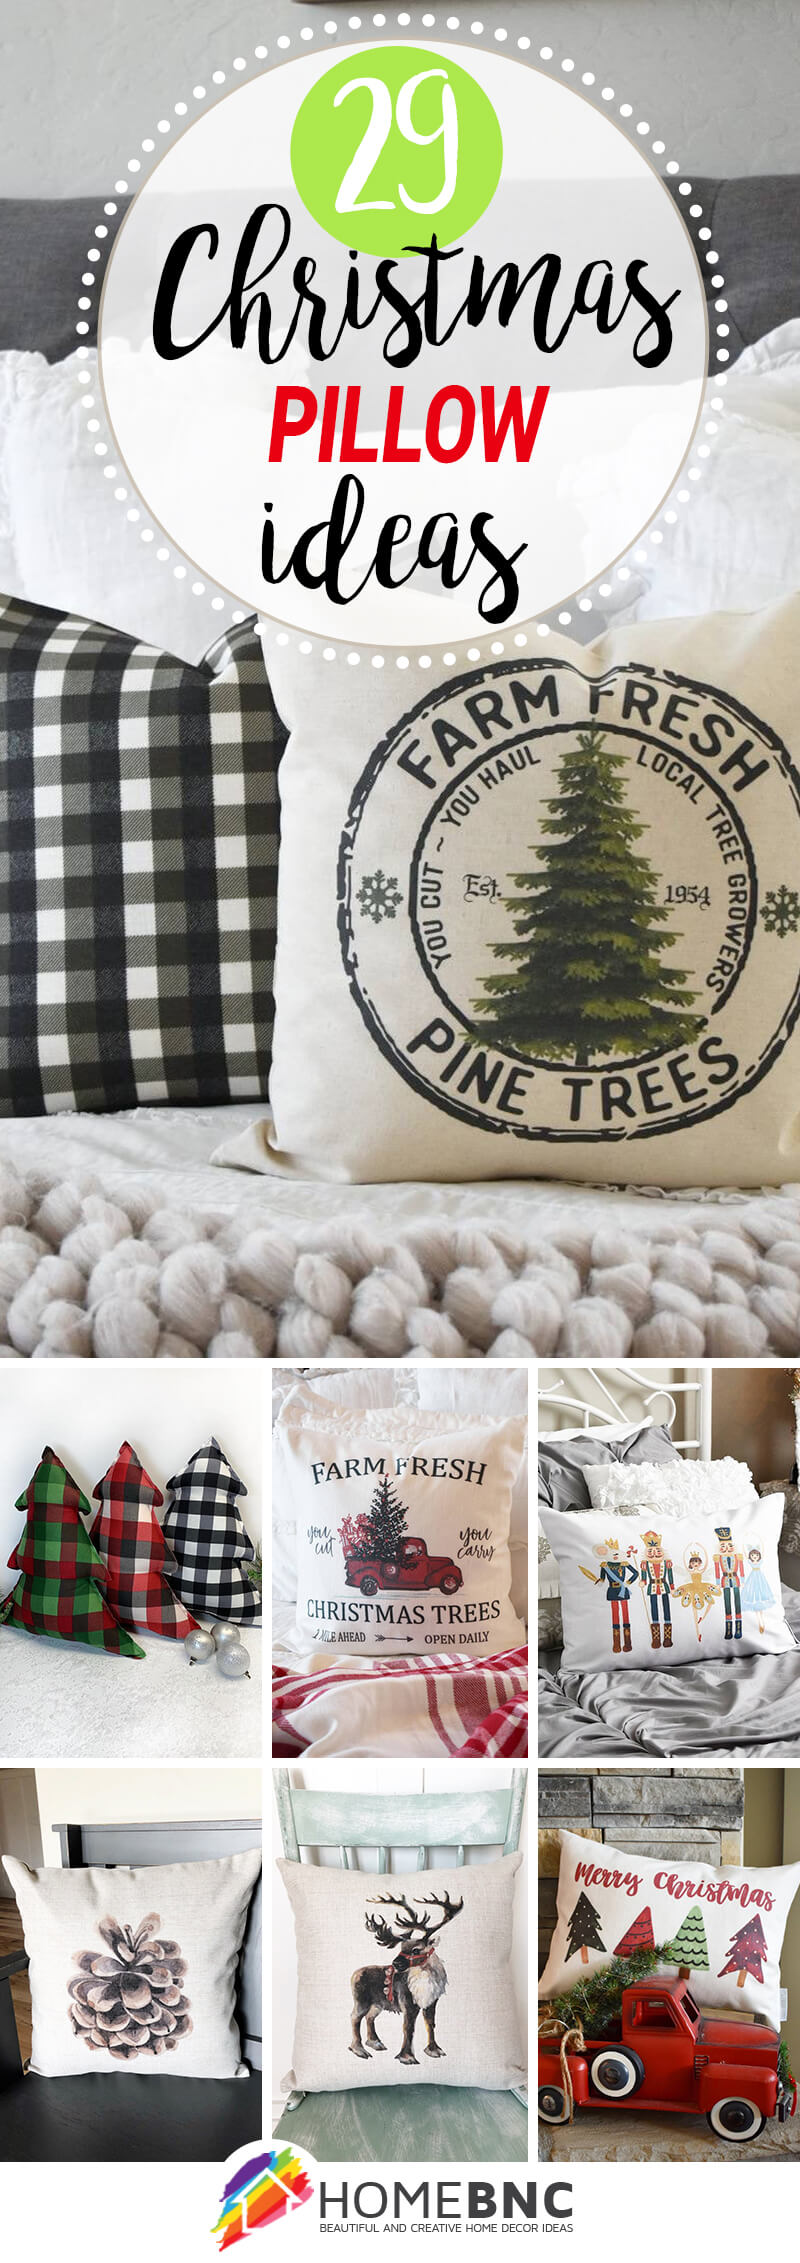 Enjoyable 29 Best Christmas Pillows To Find The Perfect Couch Inzonedesignstudio Interior Chair Design Inzonedesignstudiocom